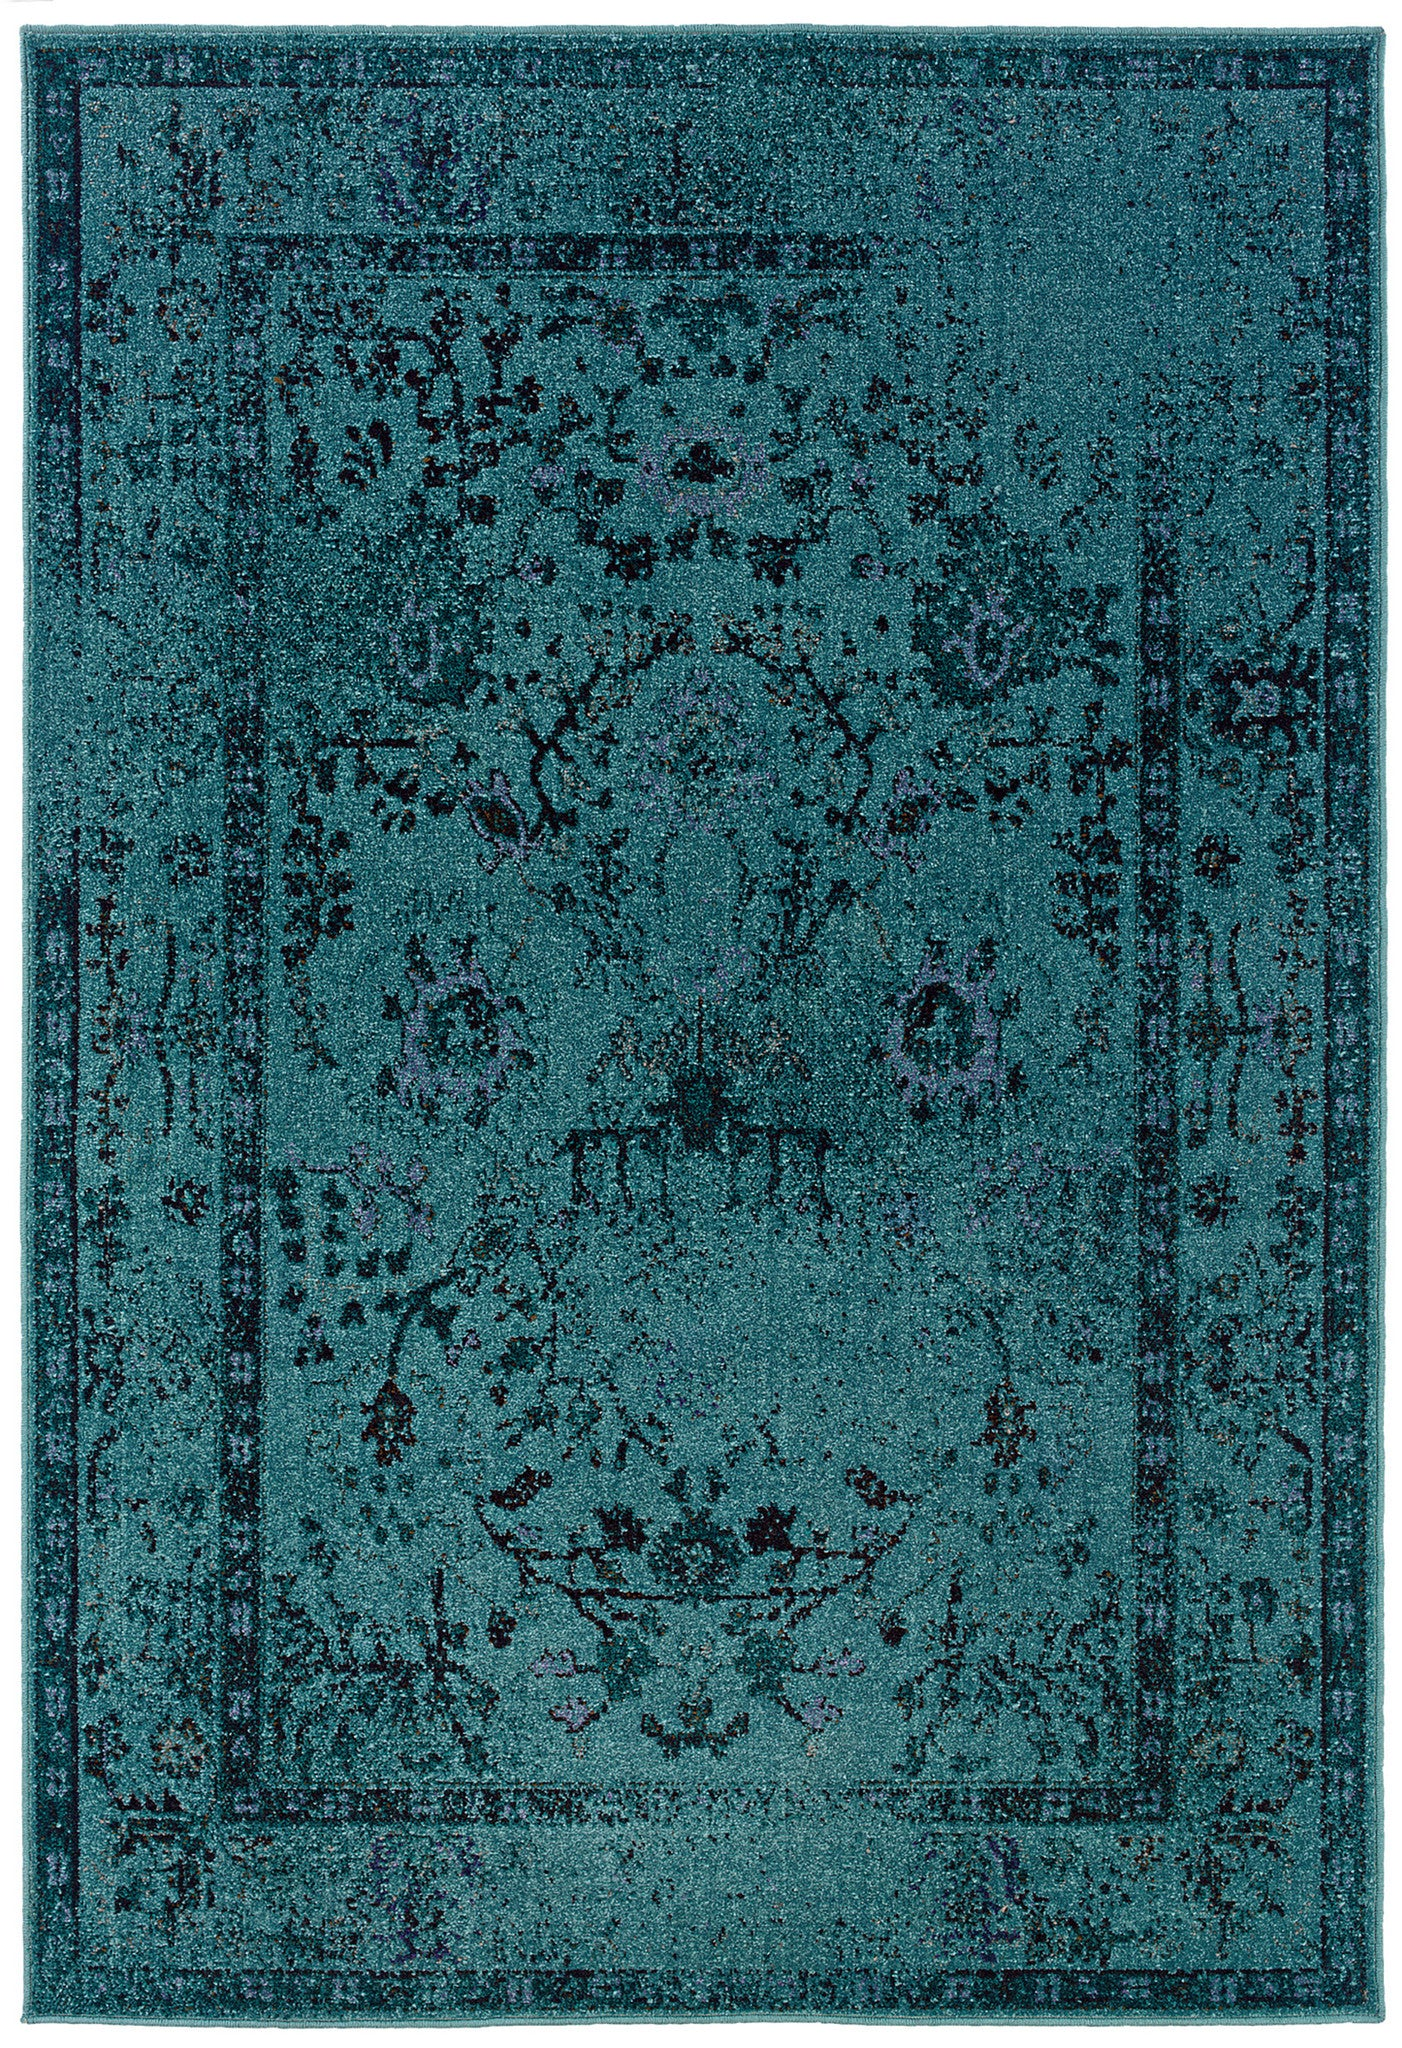 Teal Blue Overdyed Style Area Rug Woodwaves